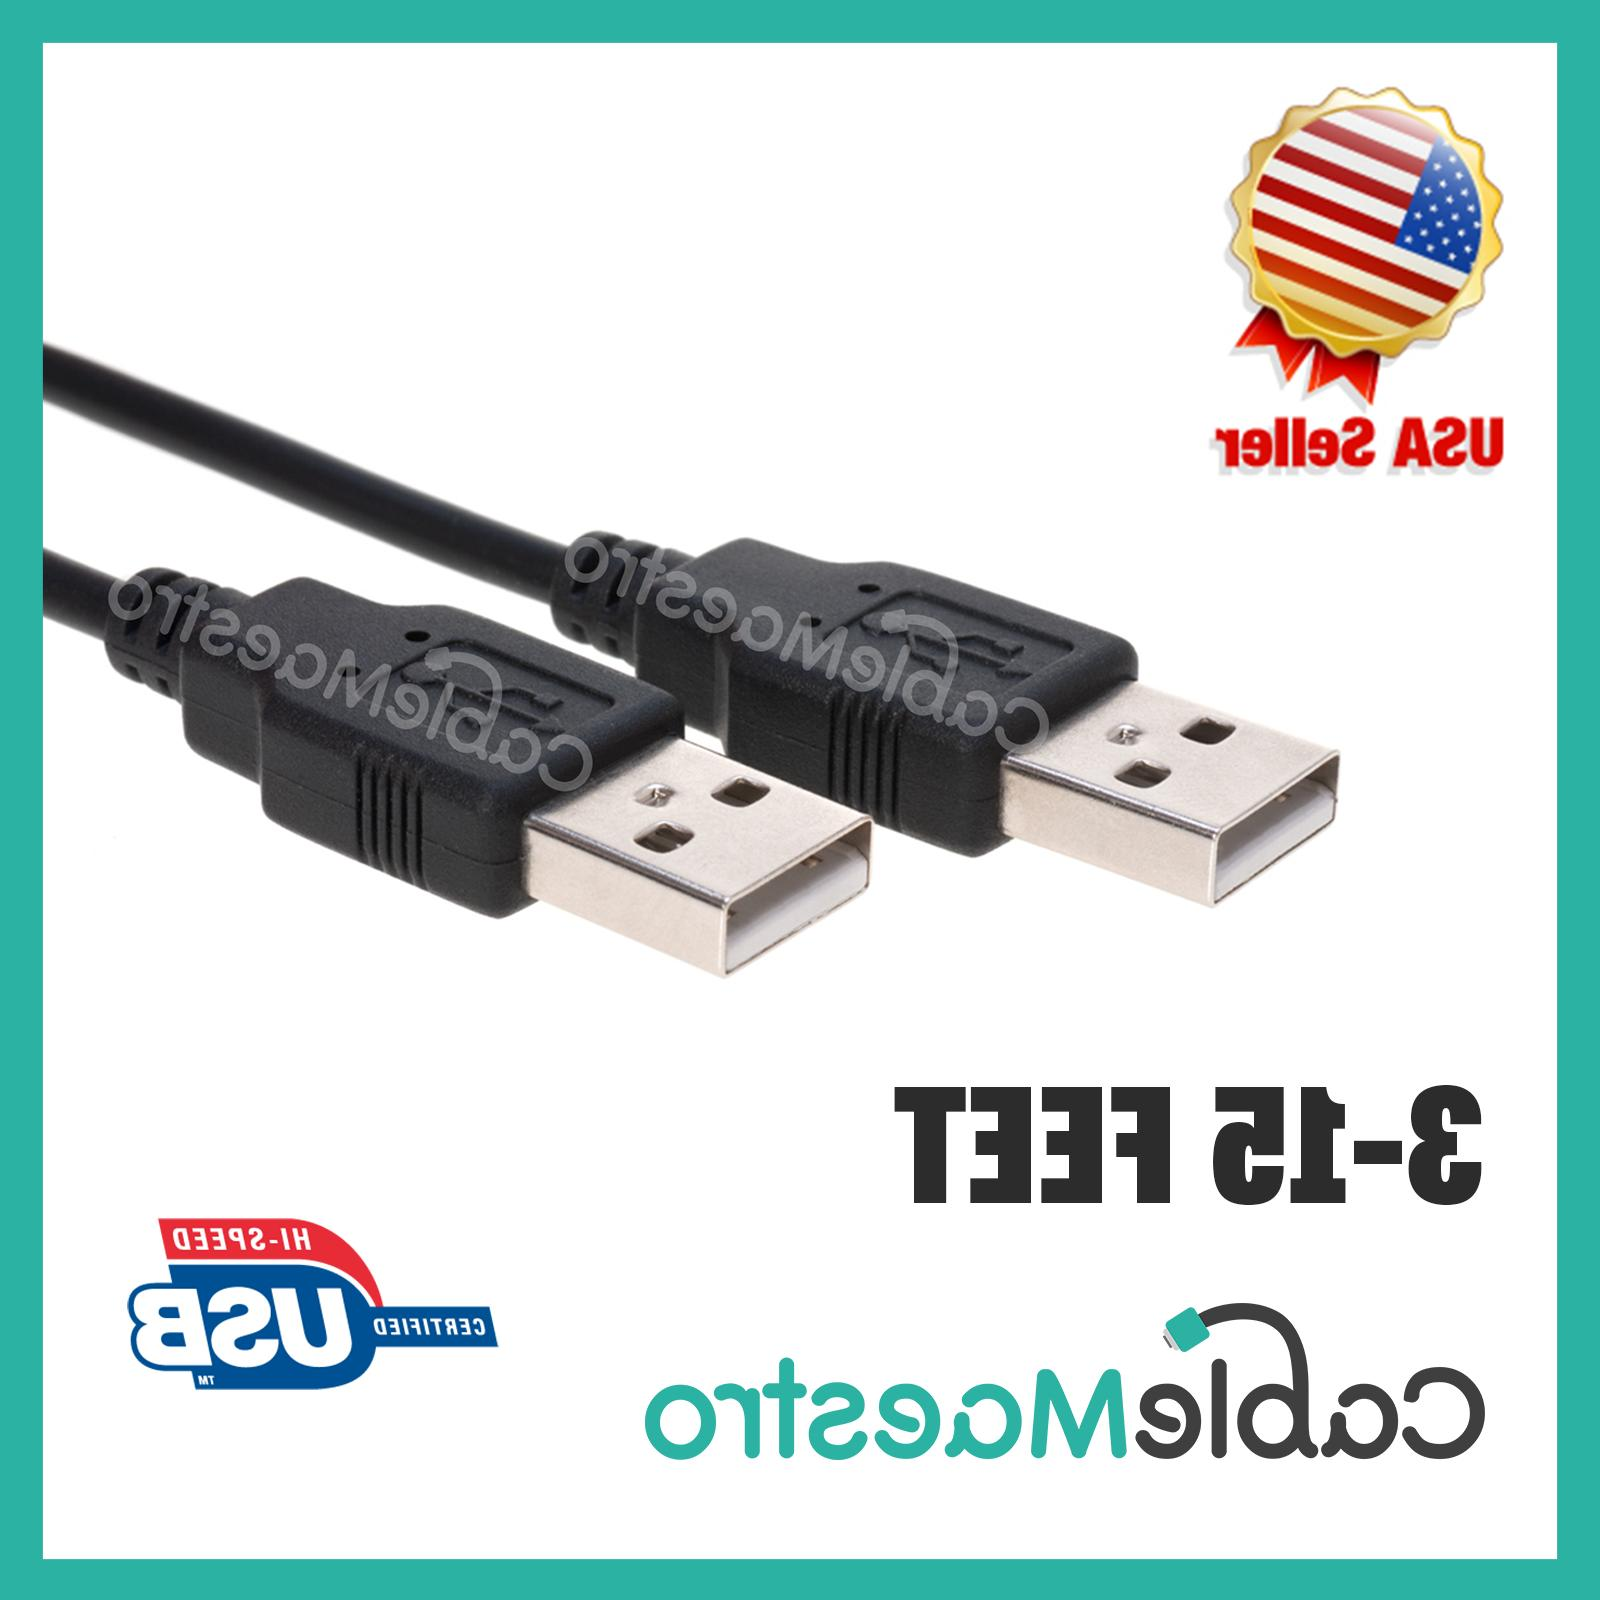 usb 2 0 extender extension cable cord